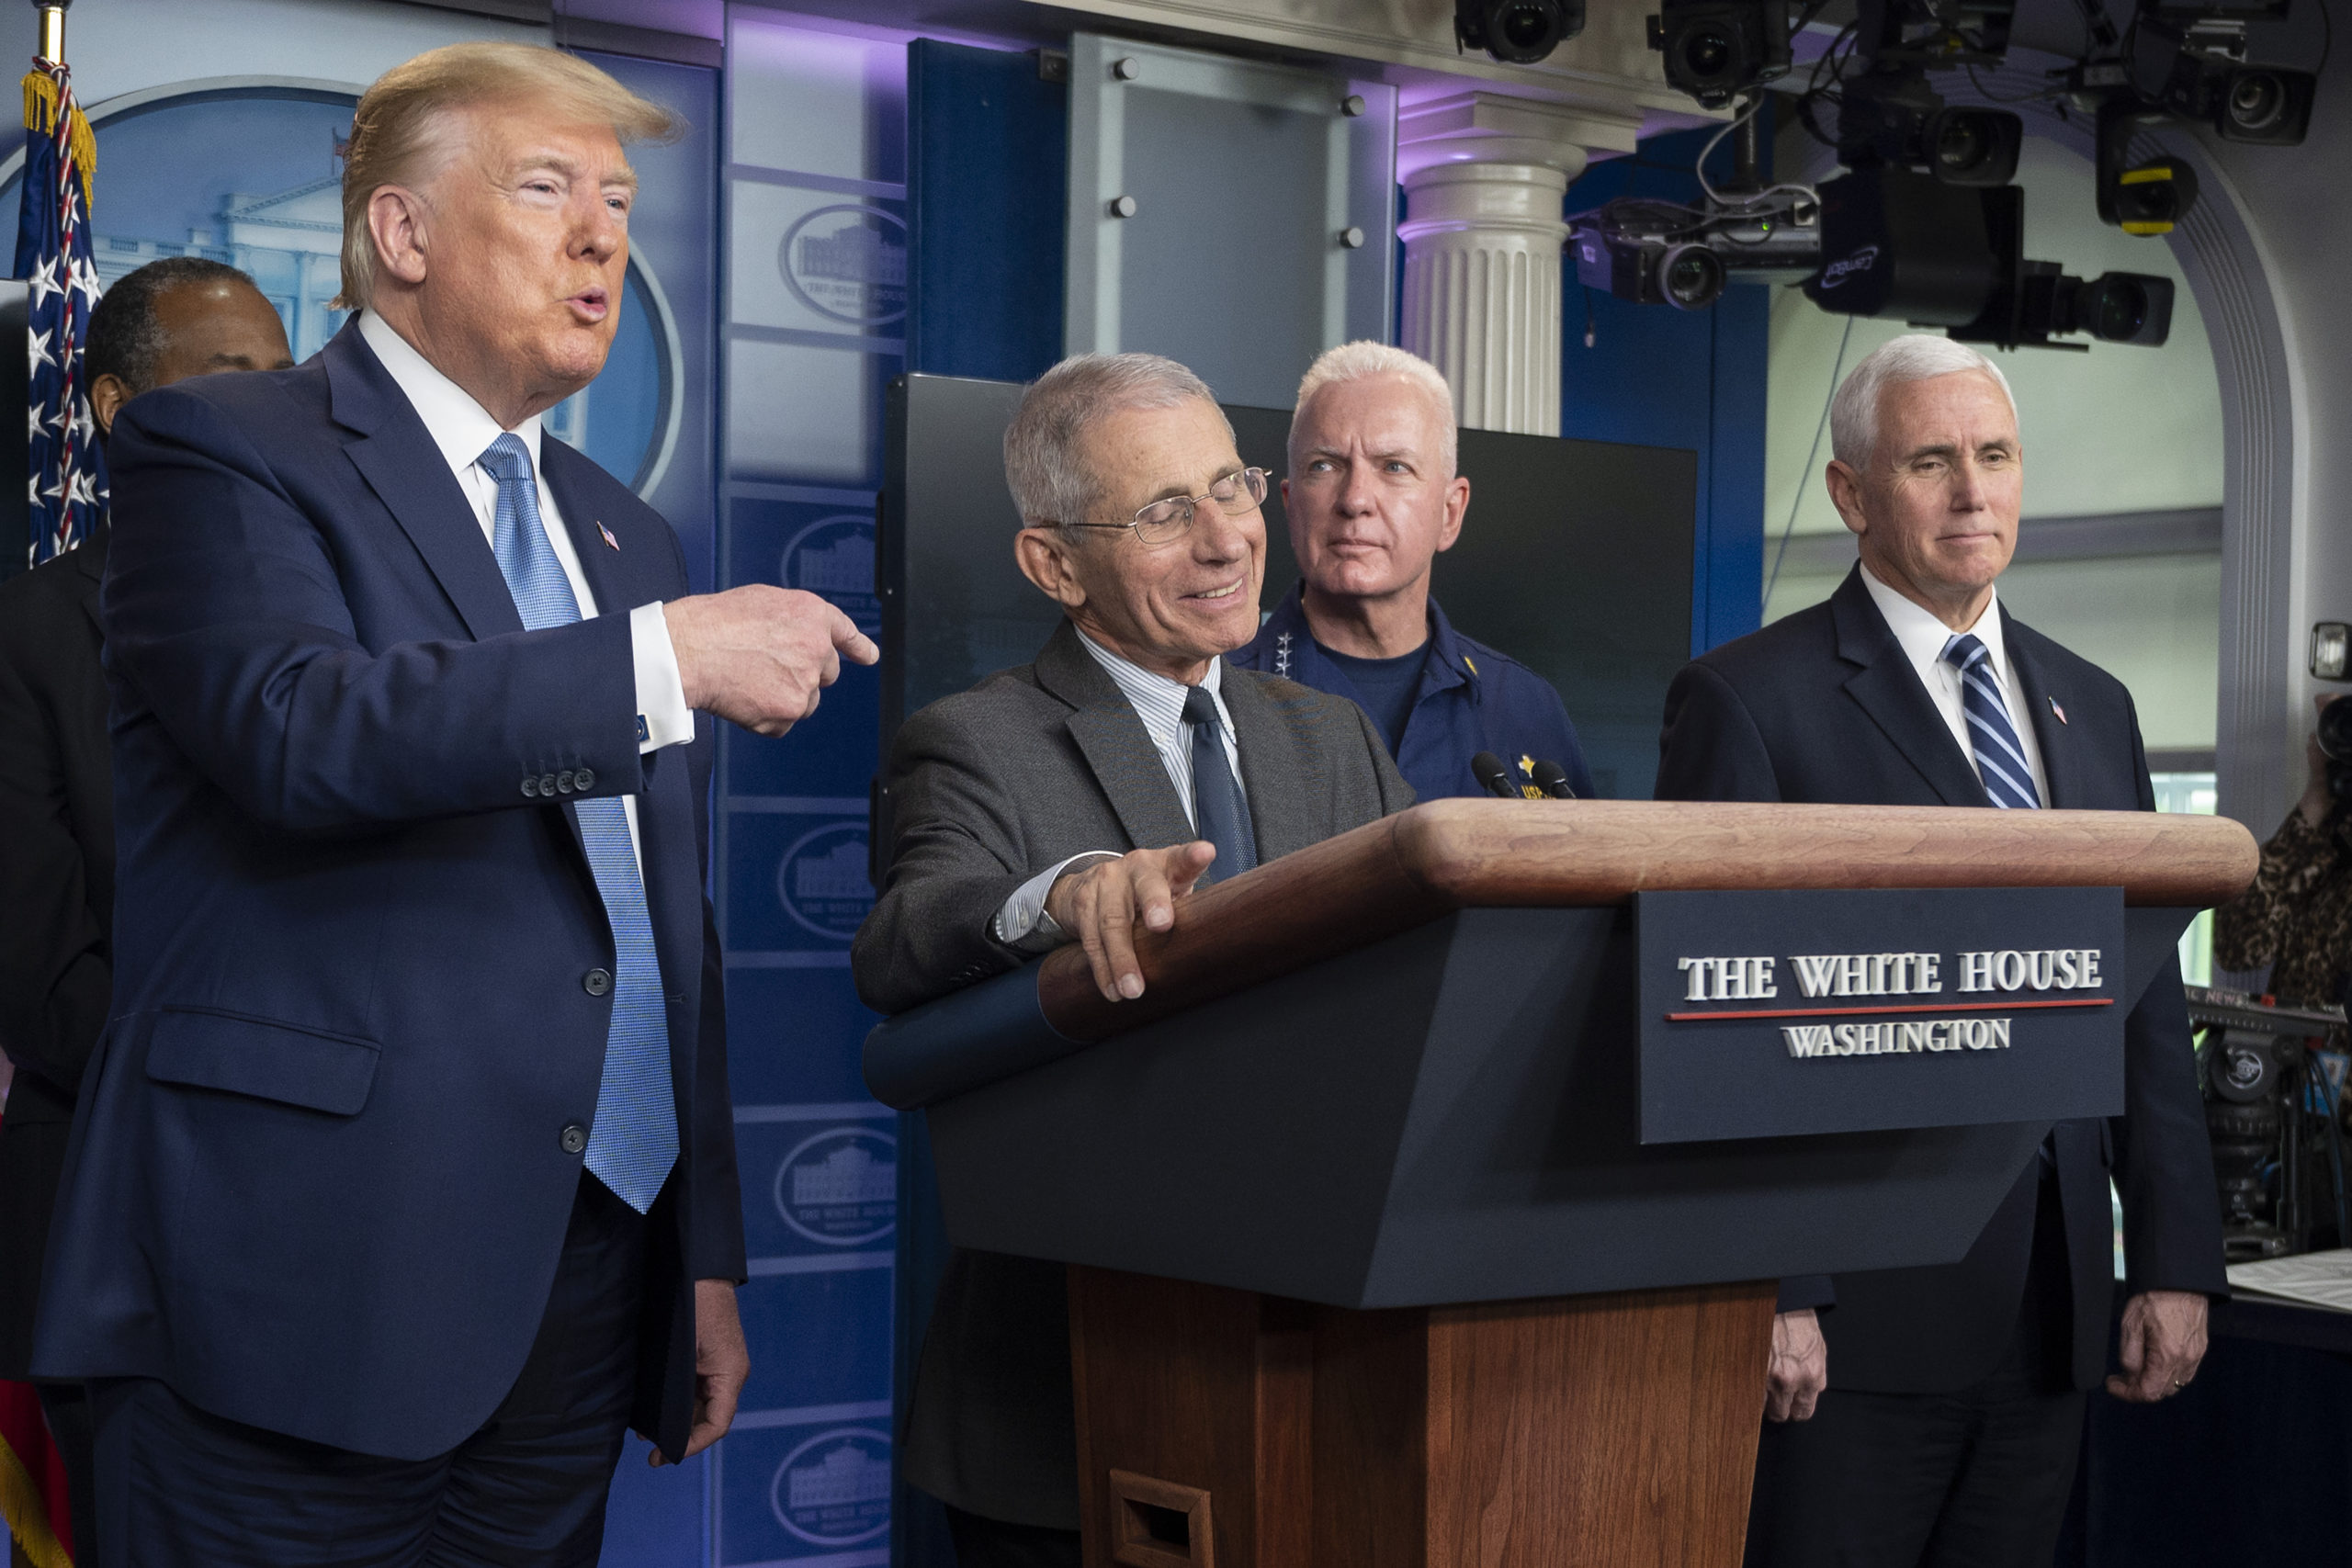 US President Donald Trump (L) gestures as National Institute of Allergy and Infectious Diseases Director, Dr. Anthony Fauci, smiles during the daily briefing on the novel coronavirus, COVID-19, at the White House on March 21, 2020, in Washington, DC. (JIM WATSON/AFP via Getty Images)